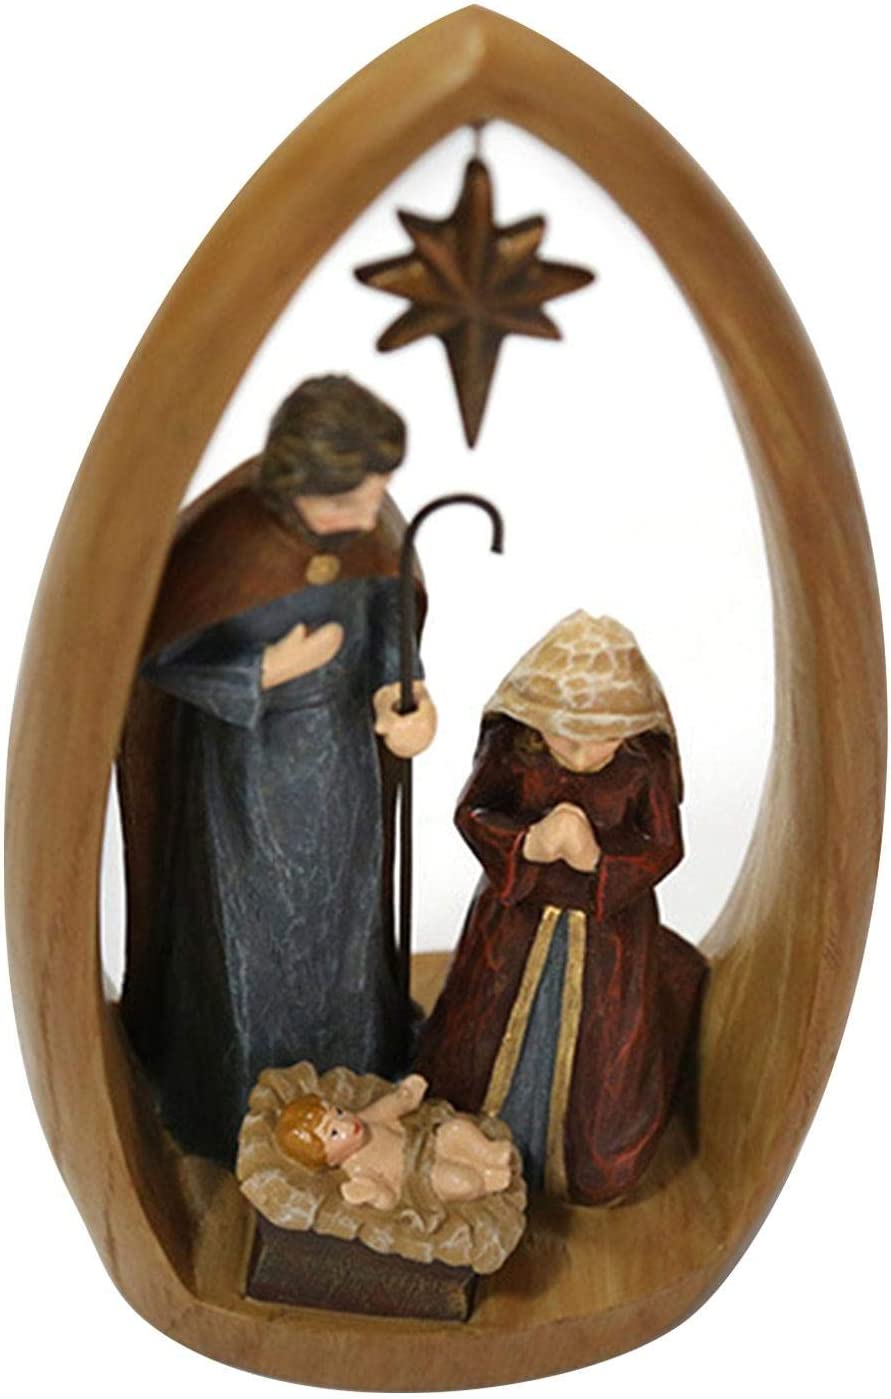 narratorbook Nativity Scenes for Christmas Indoor Ranking TOP8 Nati High quality new Religious